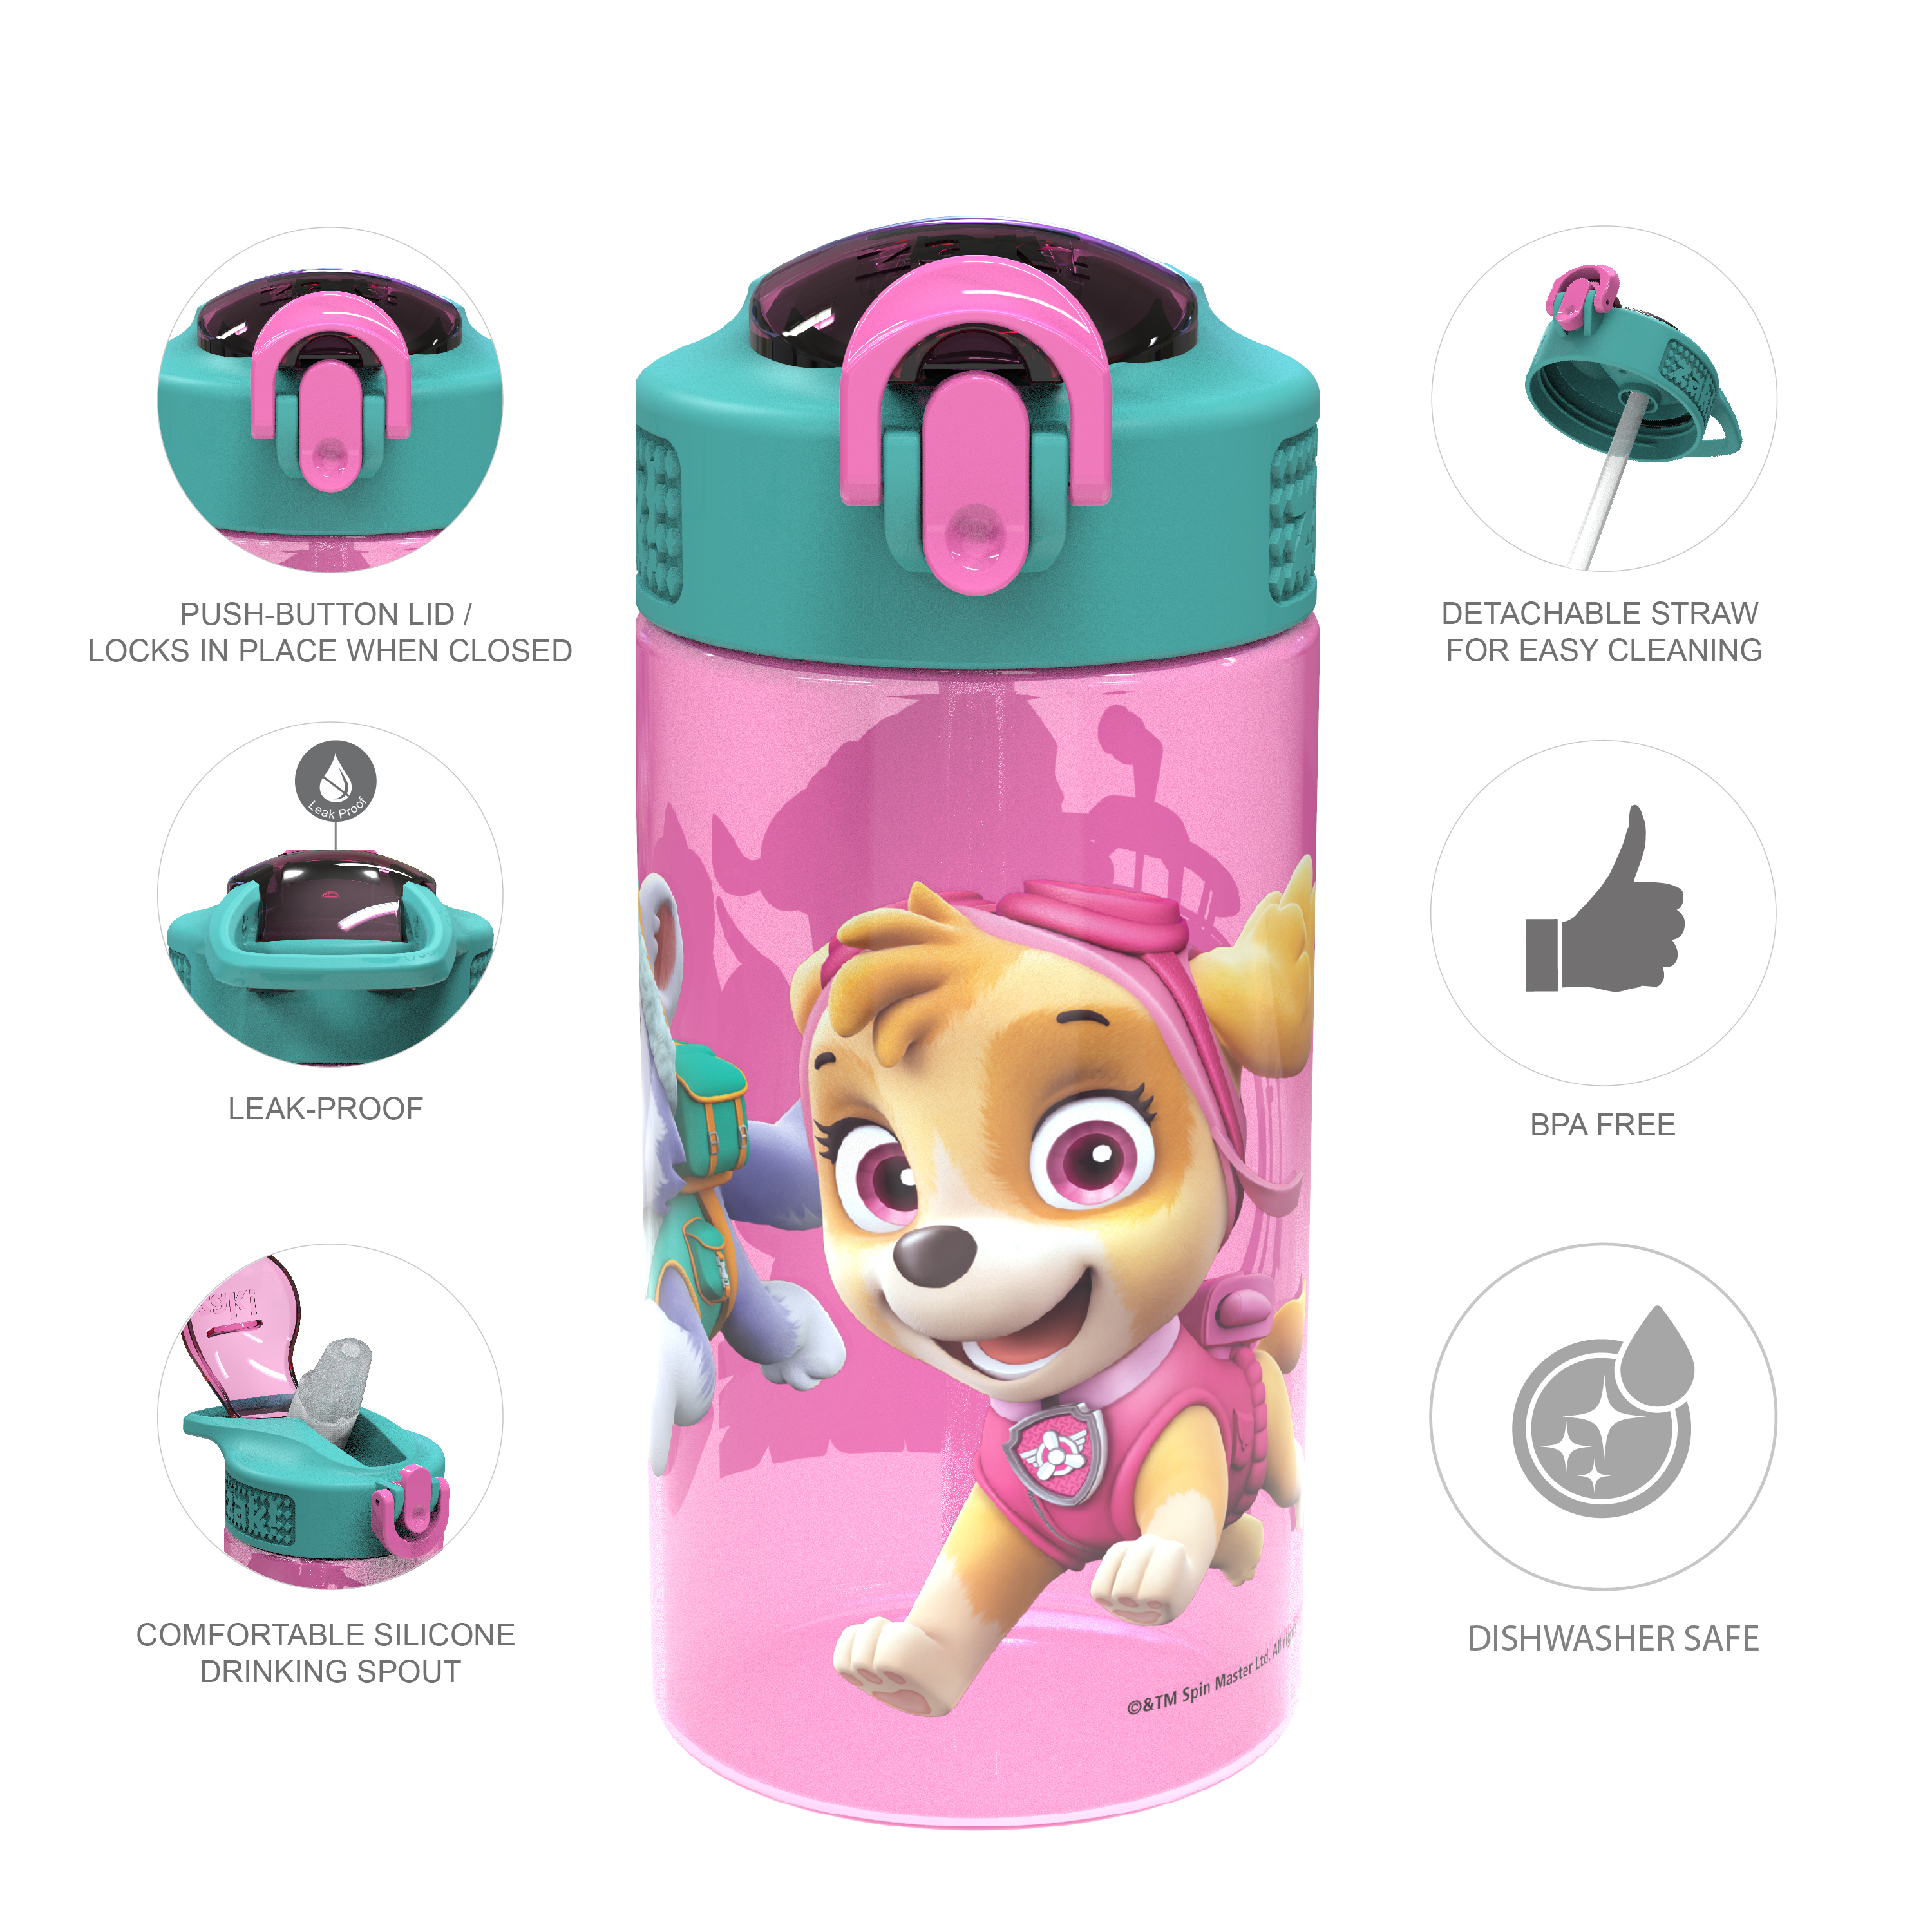 Paw Patrol 16 ounce Reusable Plastic Water Bottle with Straw, Skye, 2-piece set slideshow image 6